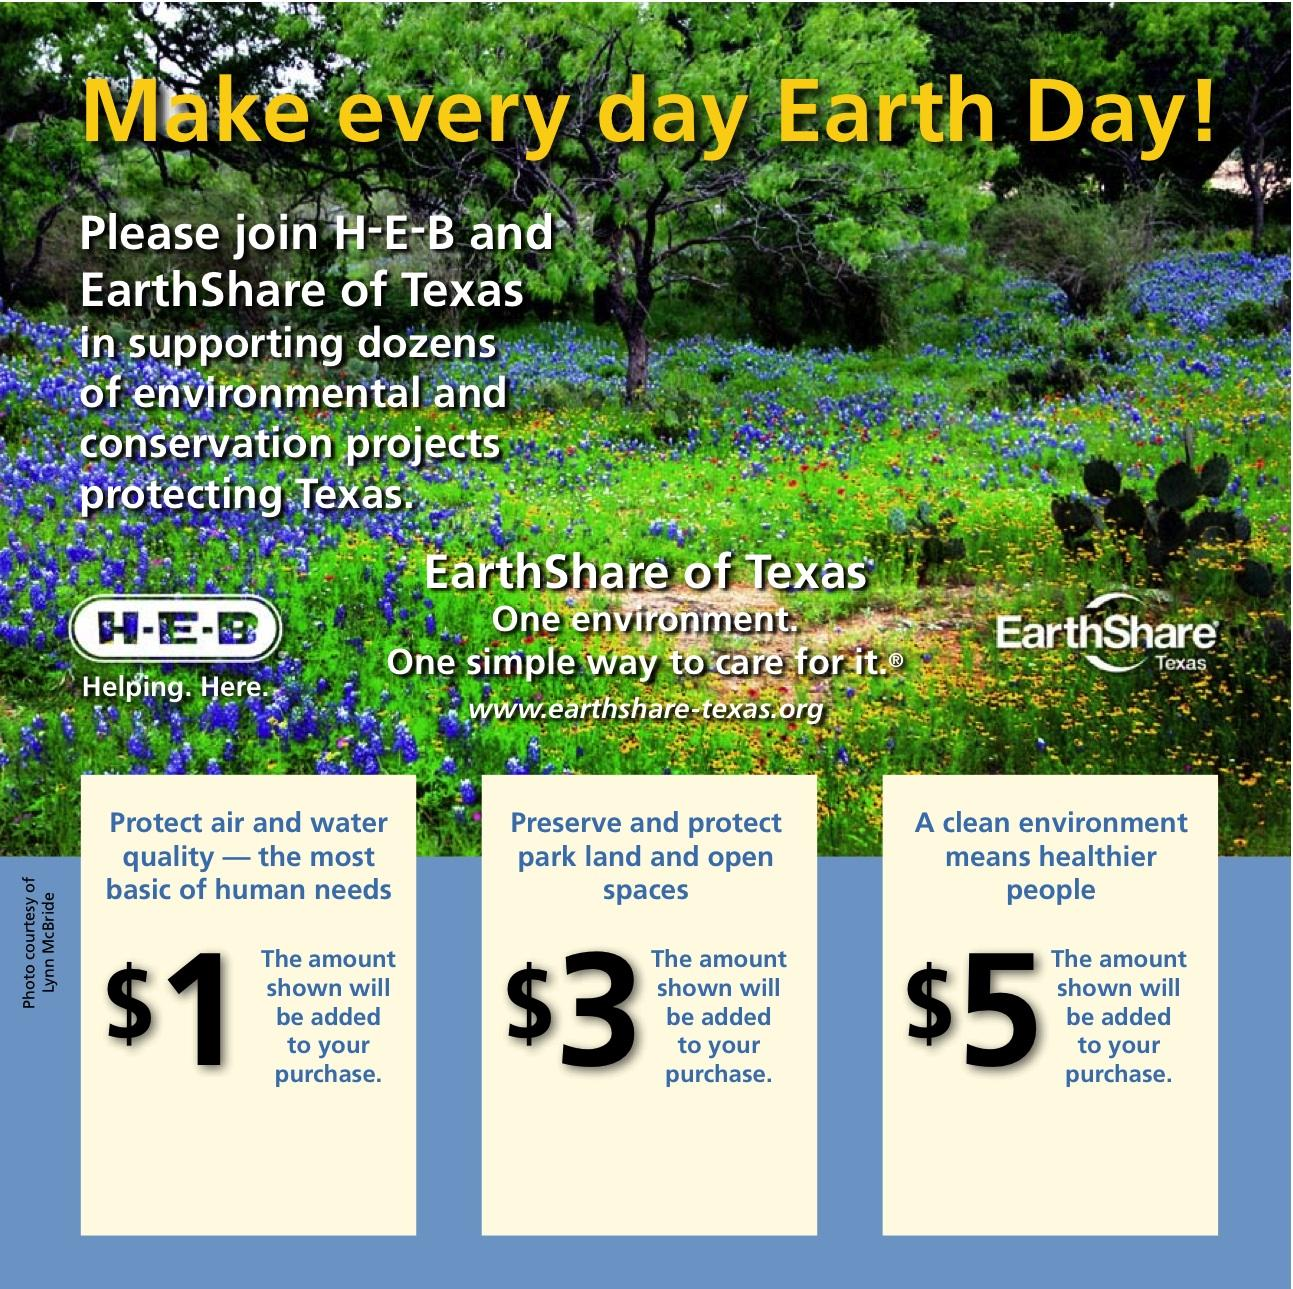 April is Earthday, give at HEB to Earthshare